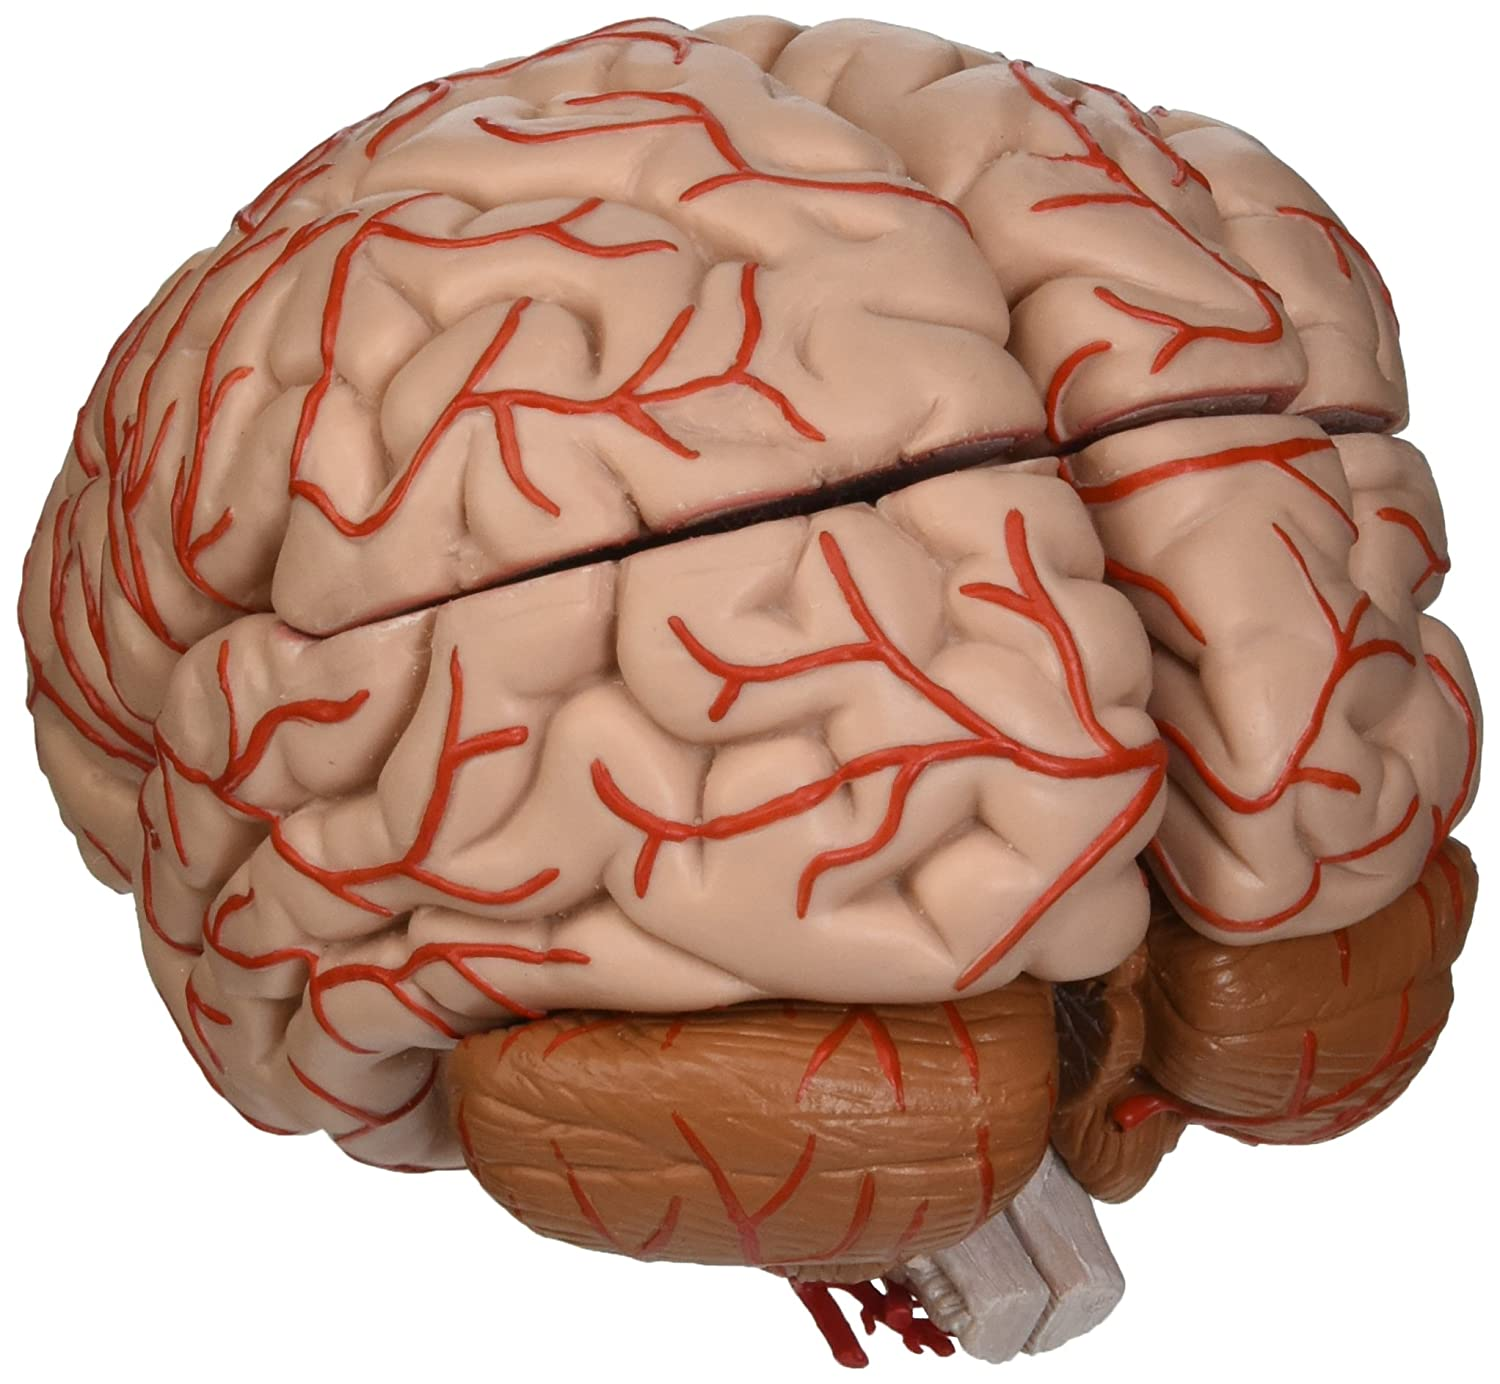 3b Scientific C20 9 Part Brain With Arteries Model 59 X 55 X